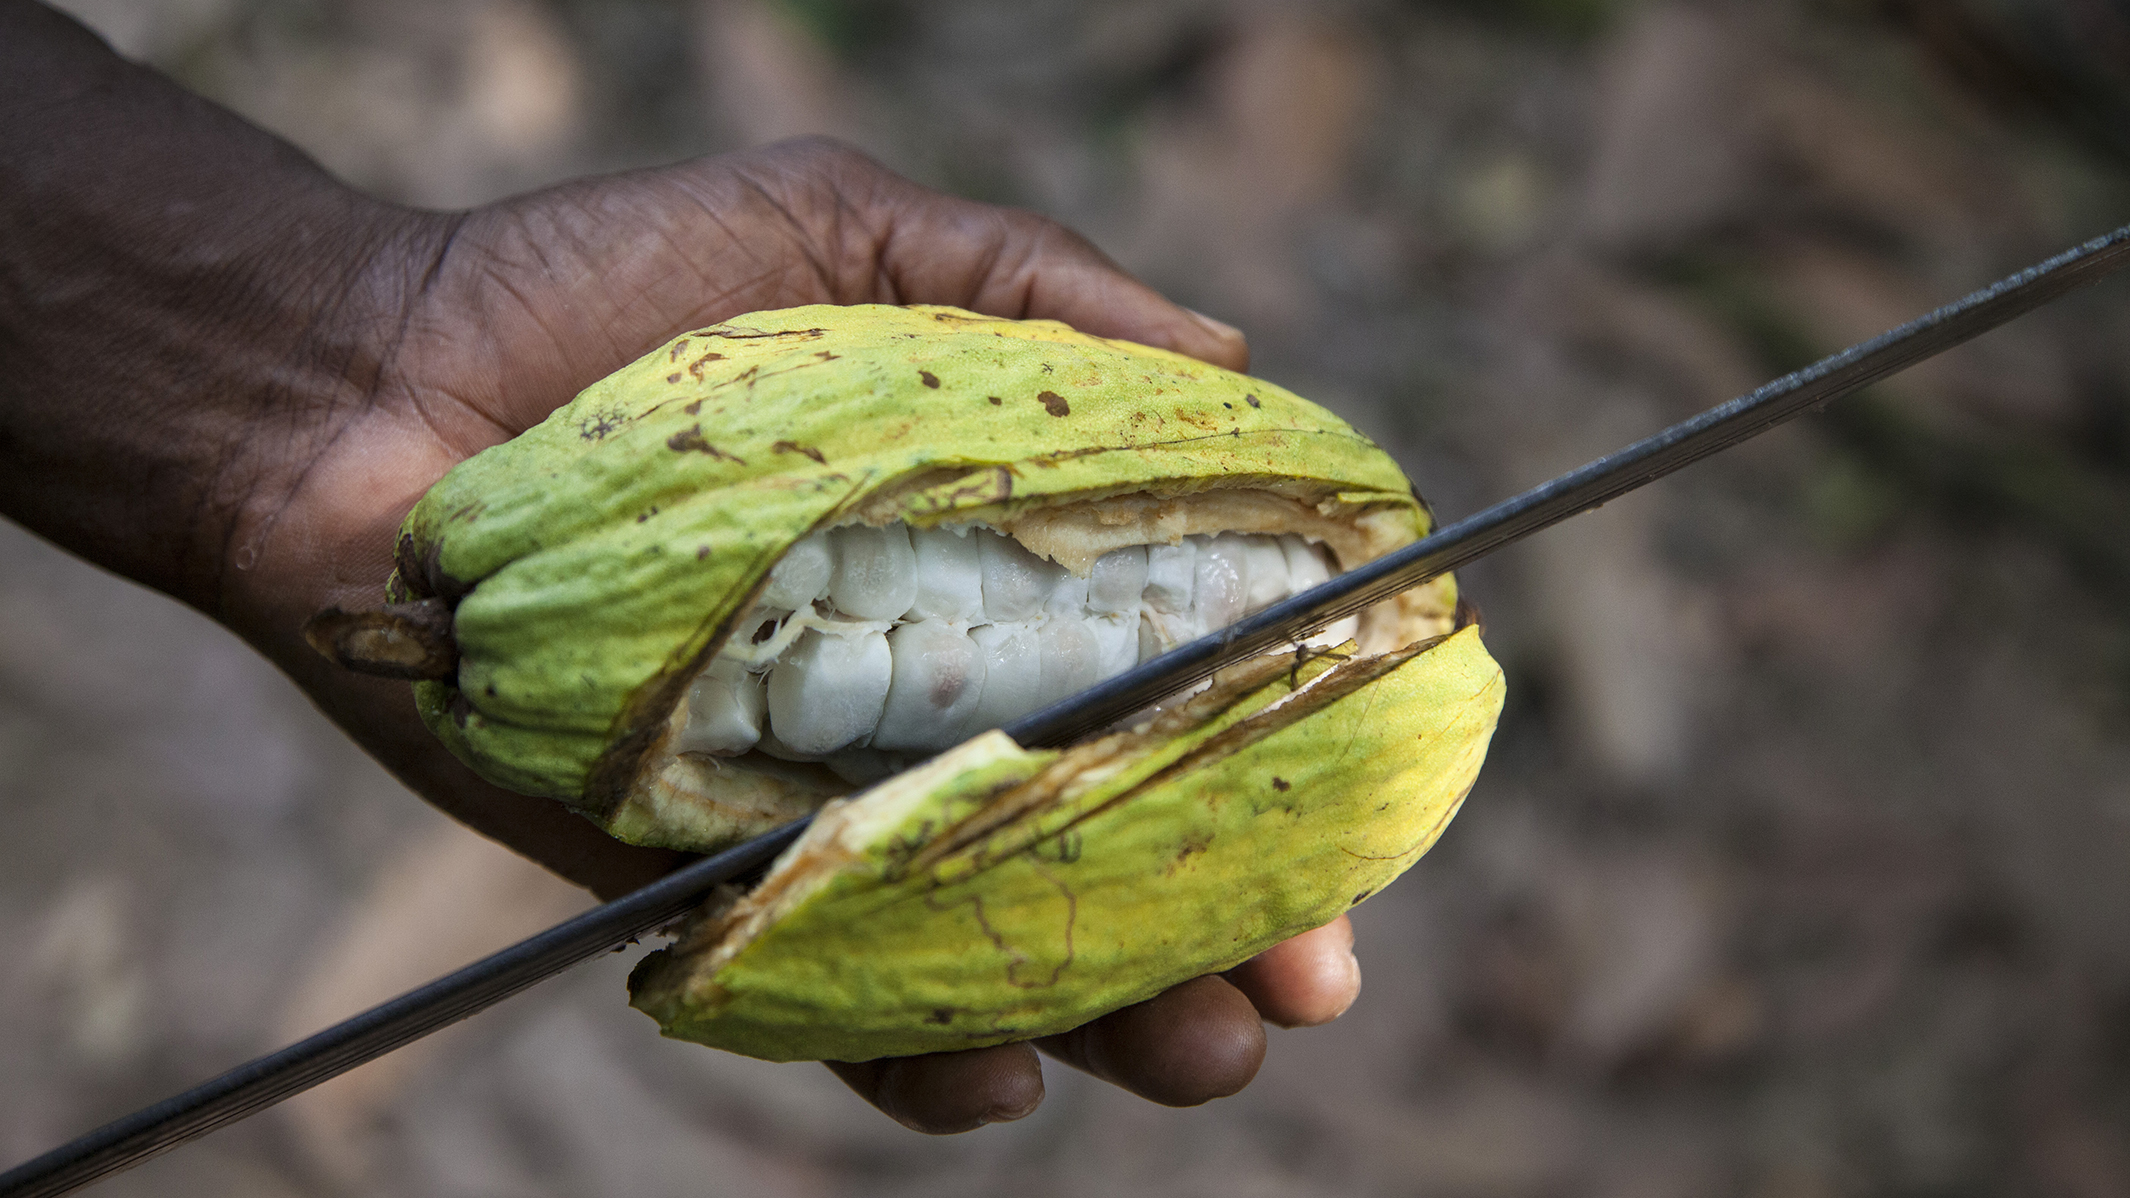 Many cocoa farm workers aren't reaping the benefits of Fairtrade certification